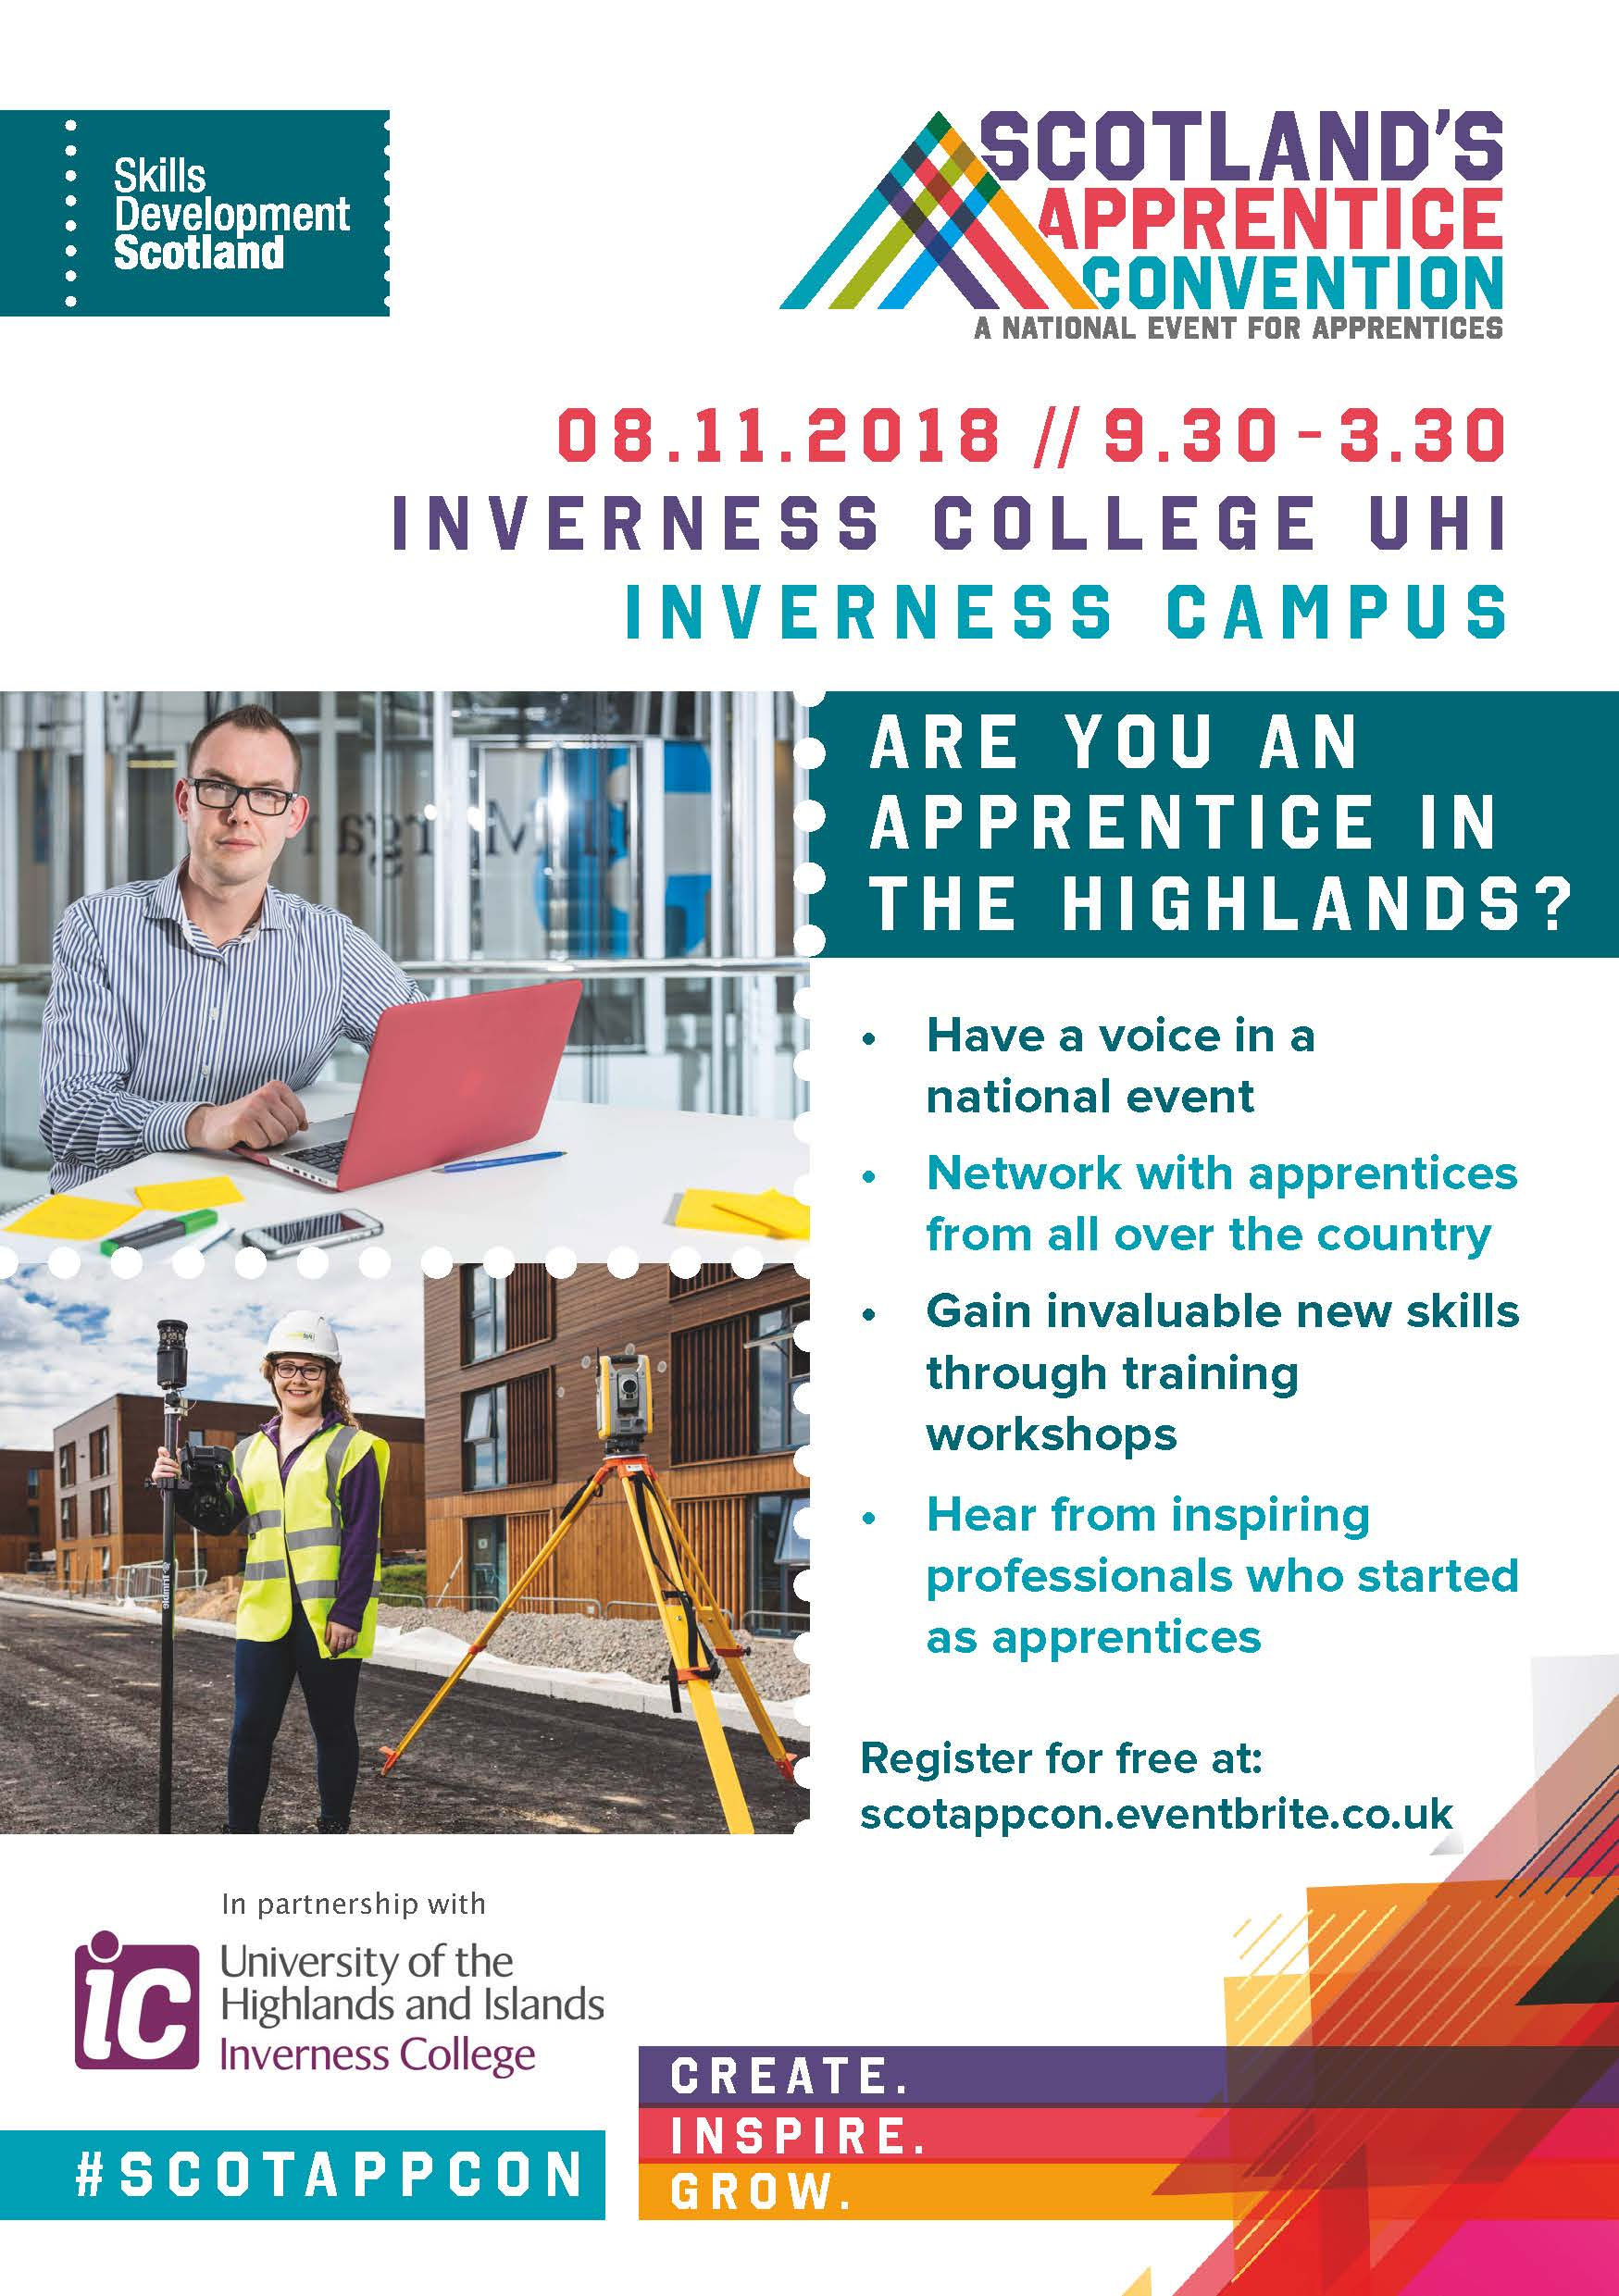 Apprentices from all over Scotland will connect at this unique event. Will you be one of them?